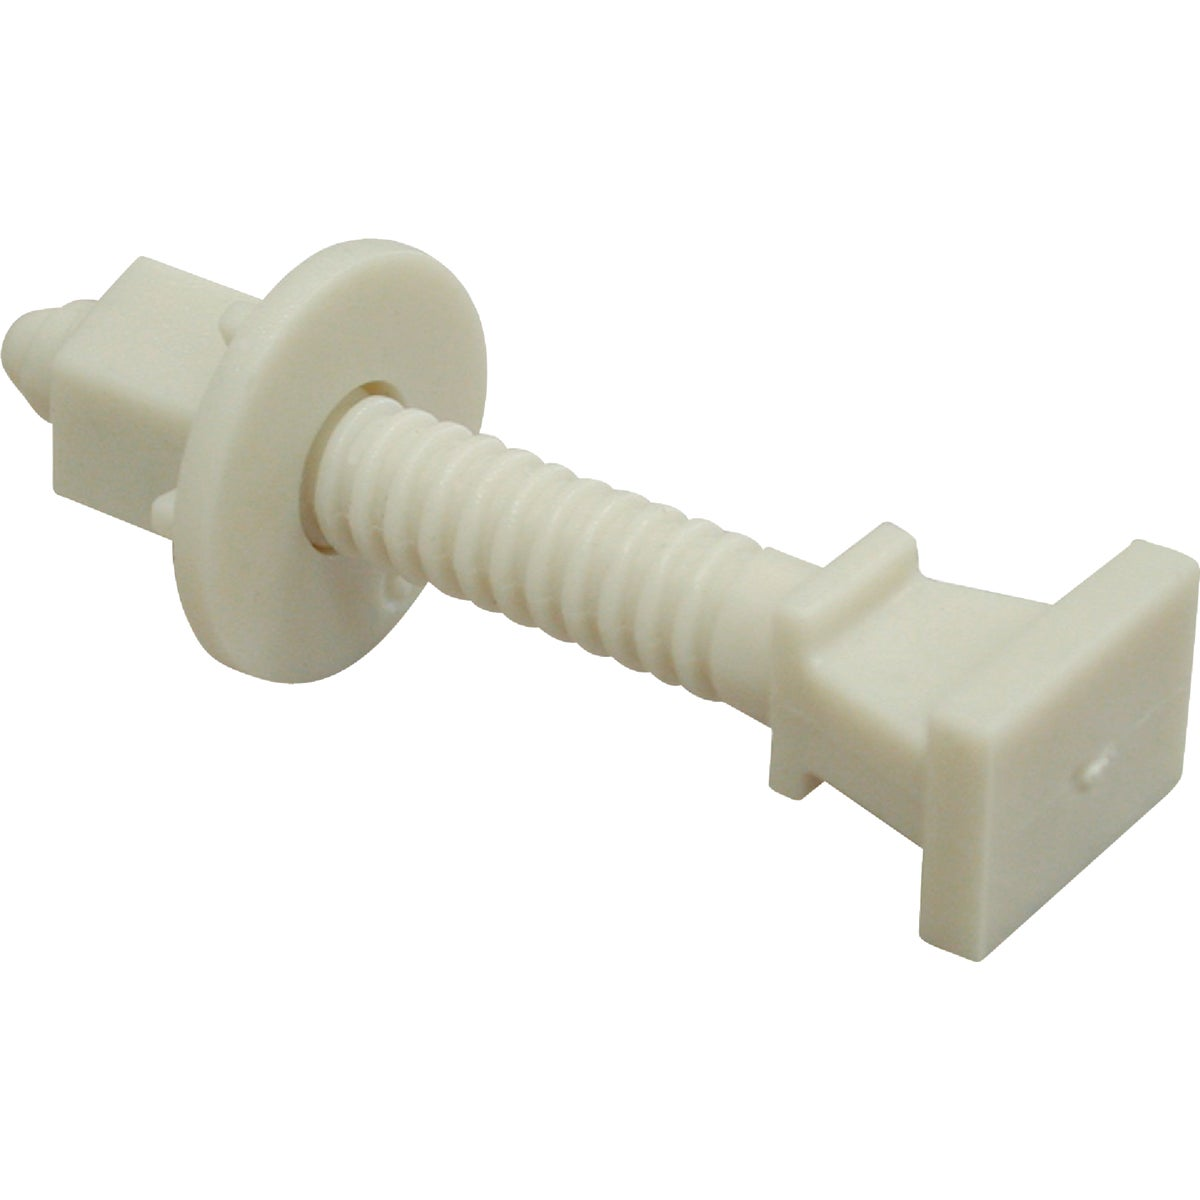 "2PK 5/16"" TOILET BOLTS - C02-050 by Jones Stephens Corp"